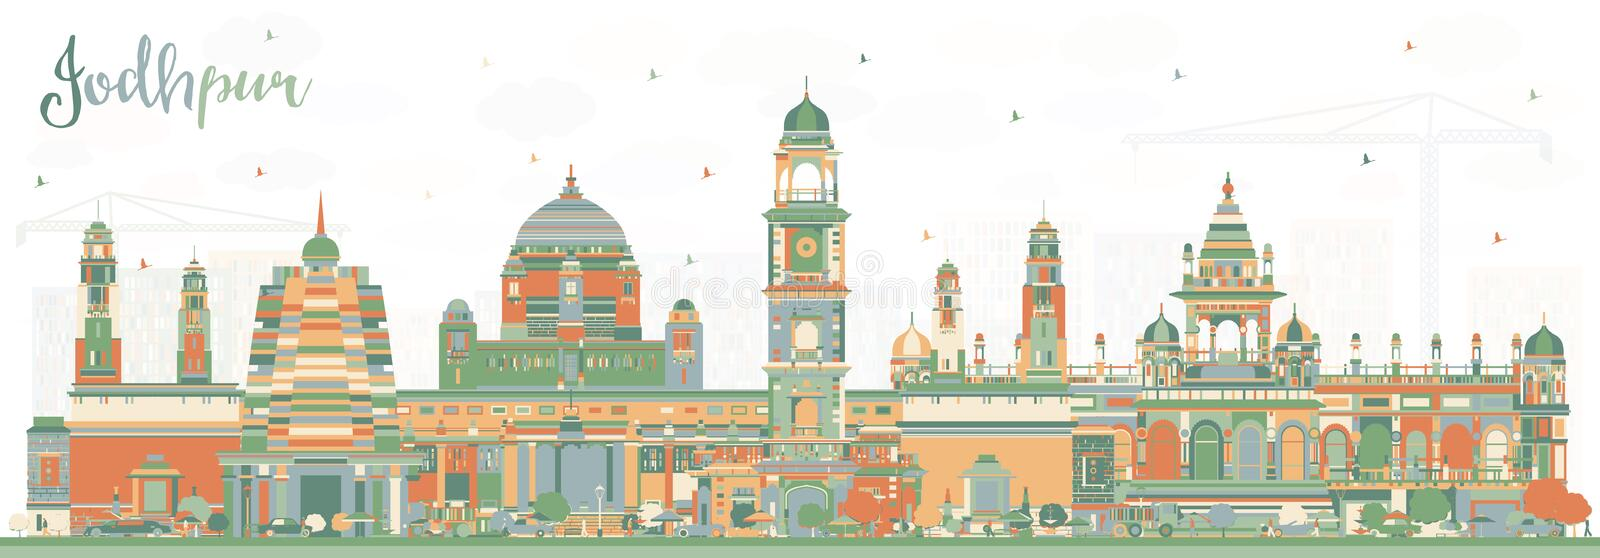 Jodhpur India City Skyline with Color Buildings. Vector Illustration. Business Travel and Concept with Historic Architecture. Jodhpur Cityscape with Landmarks royalty free illustration